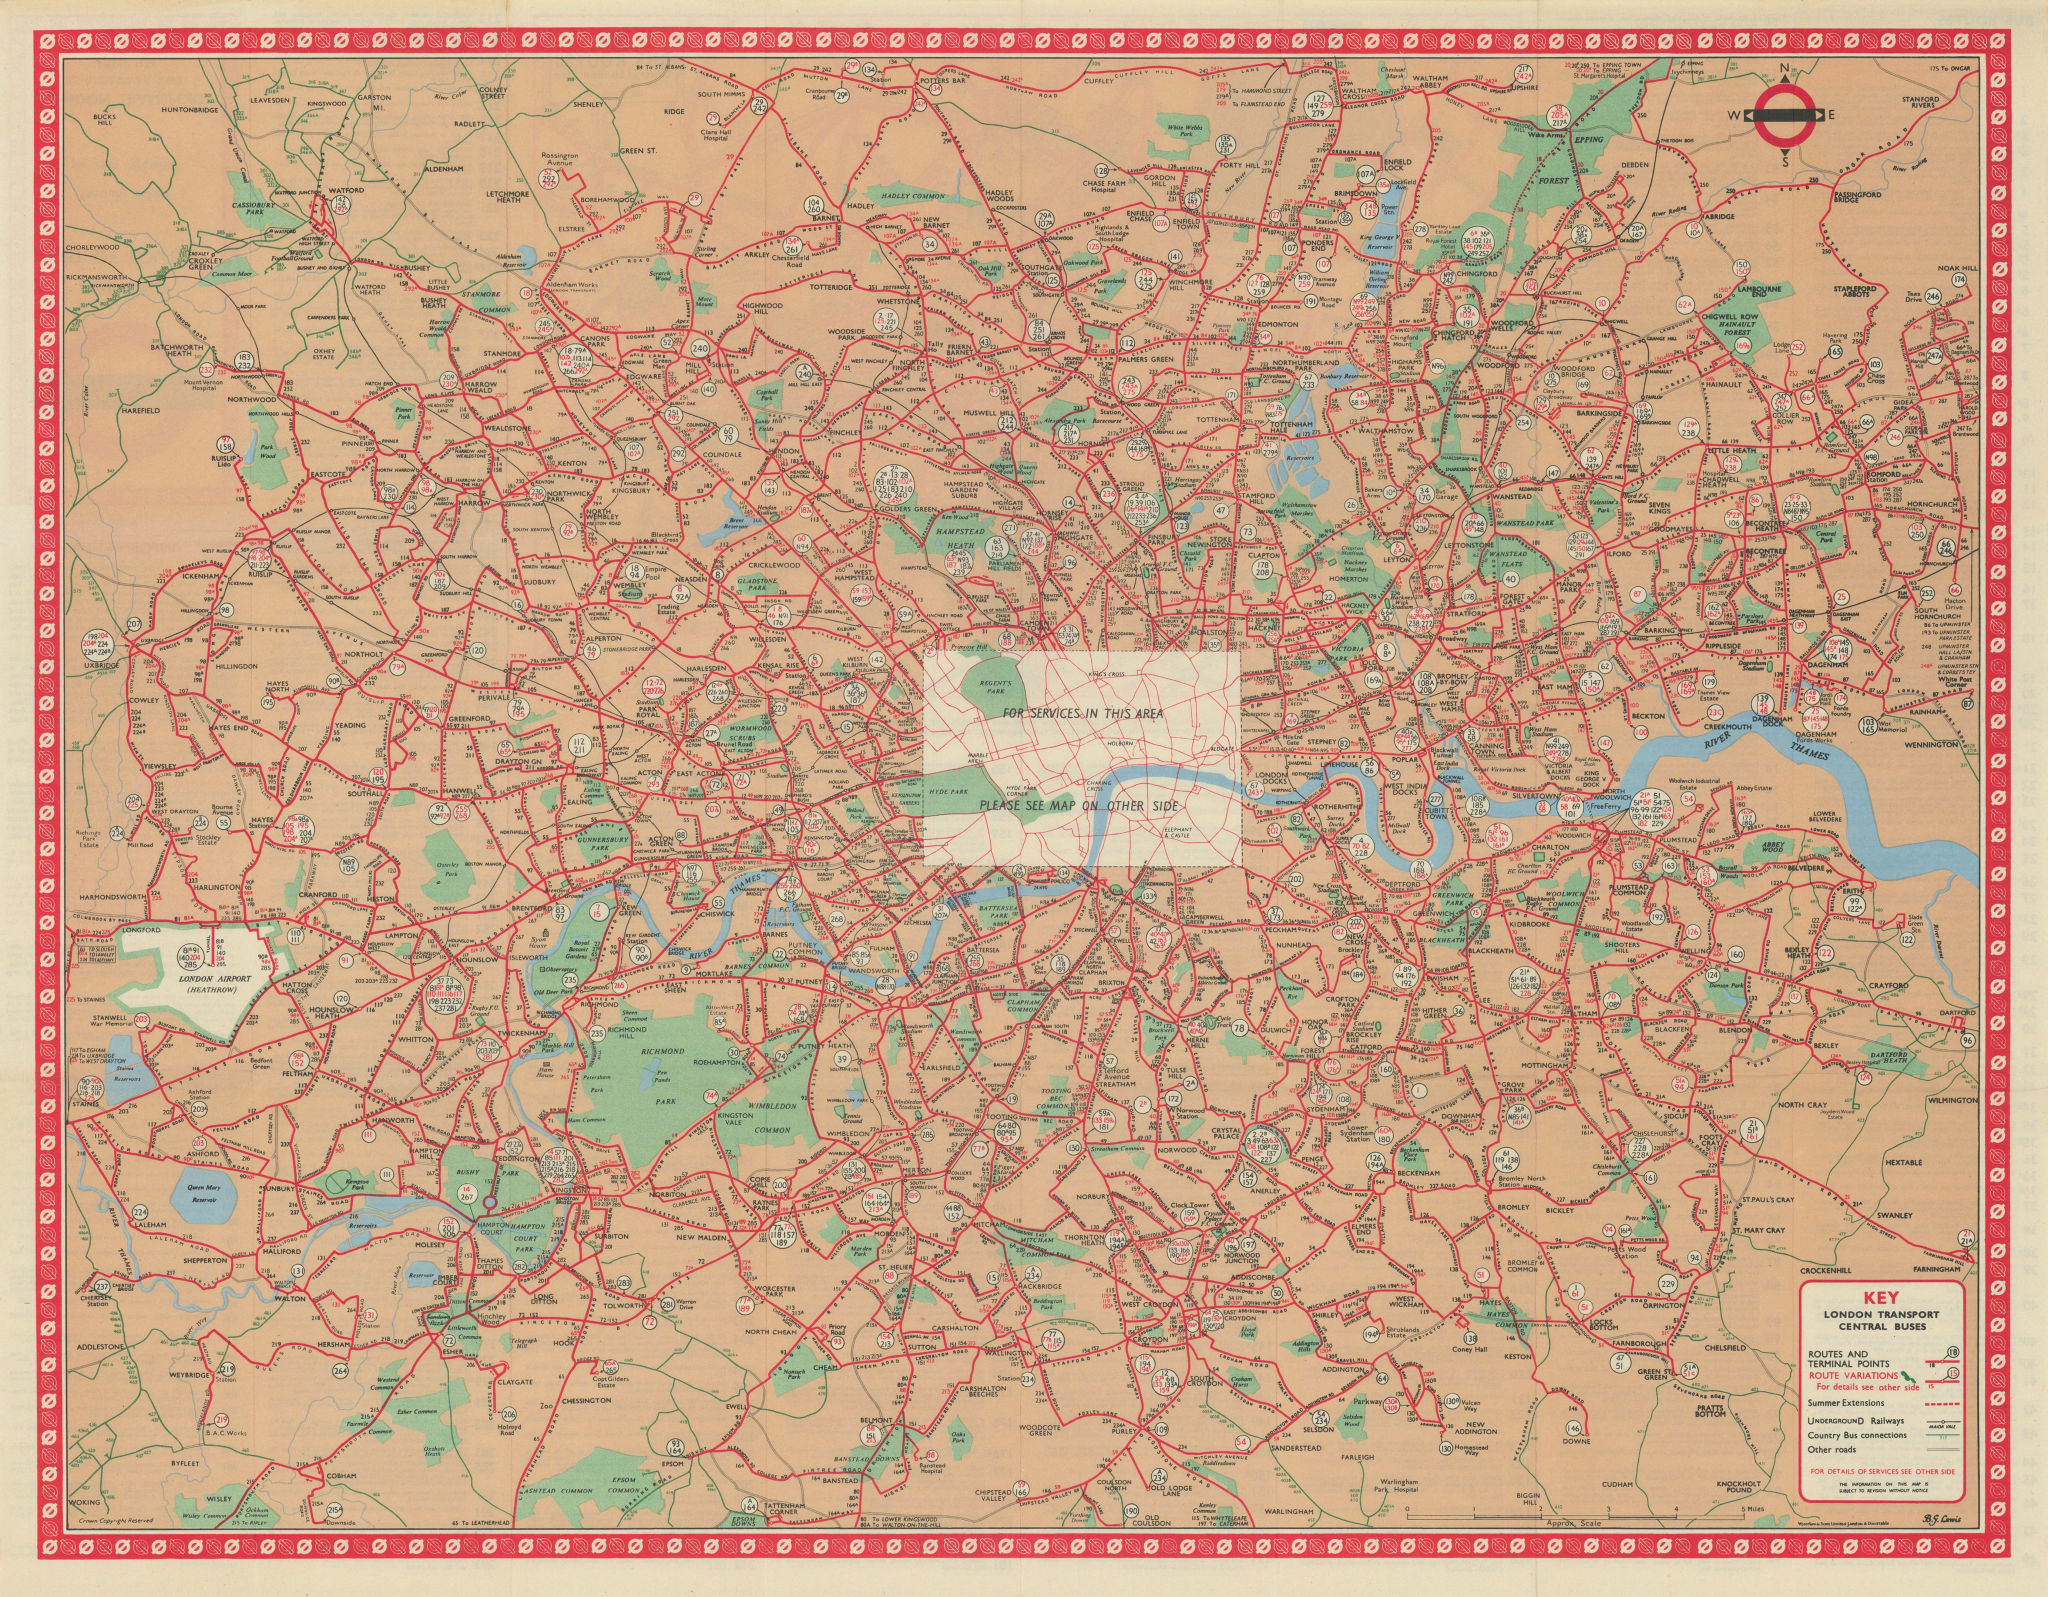 London Transport Central Buses map and list of routes. LEWIS #2 1965 old